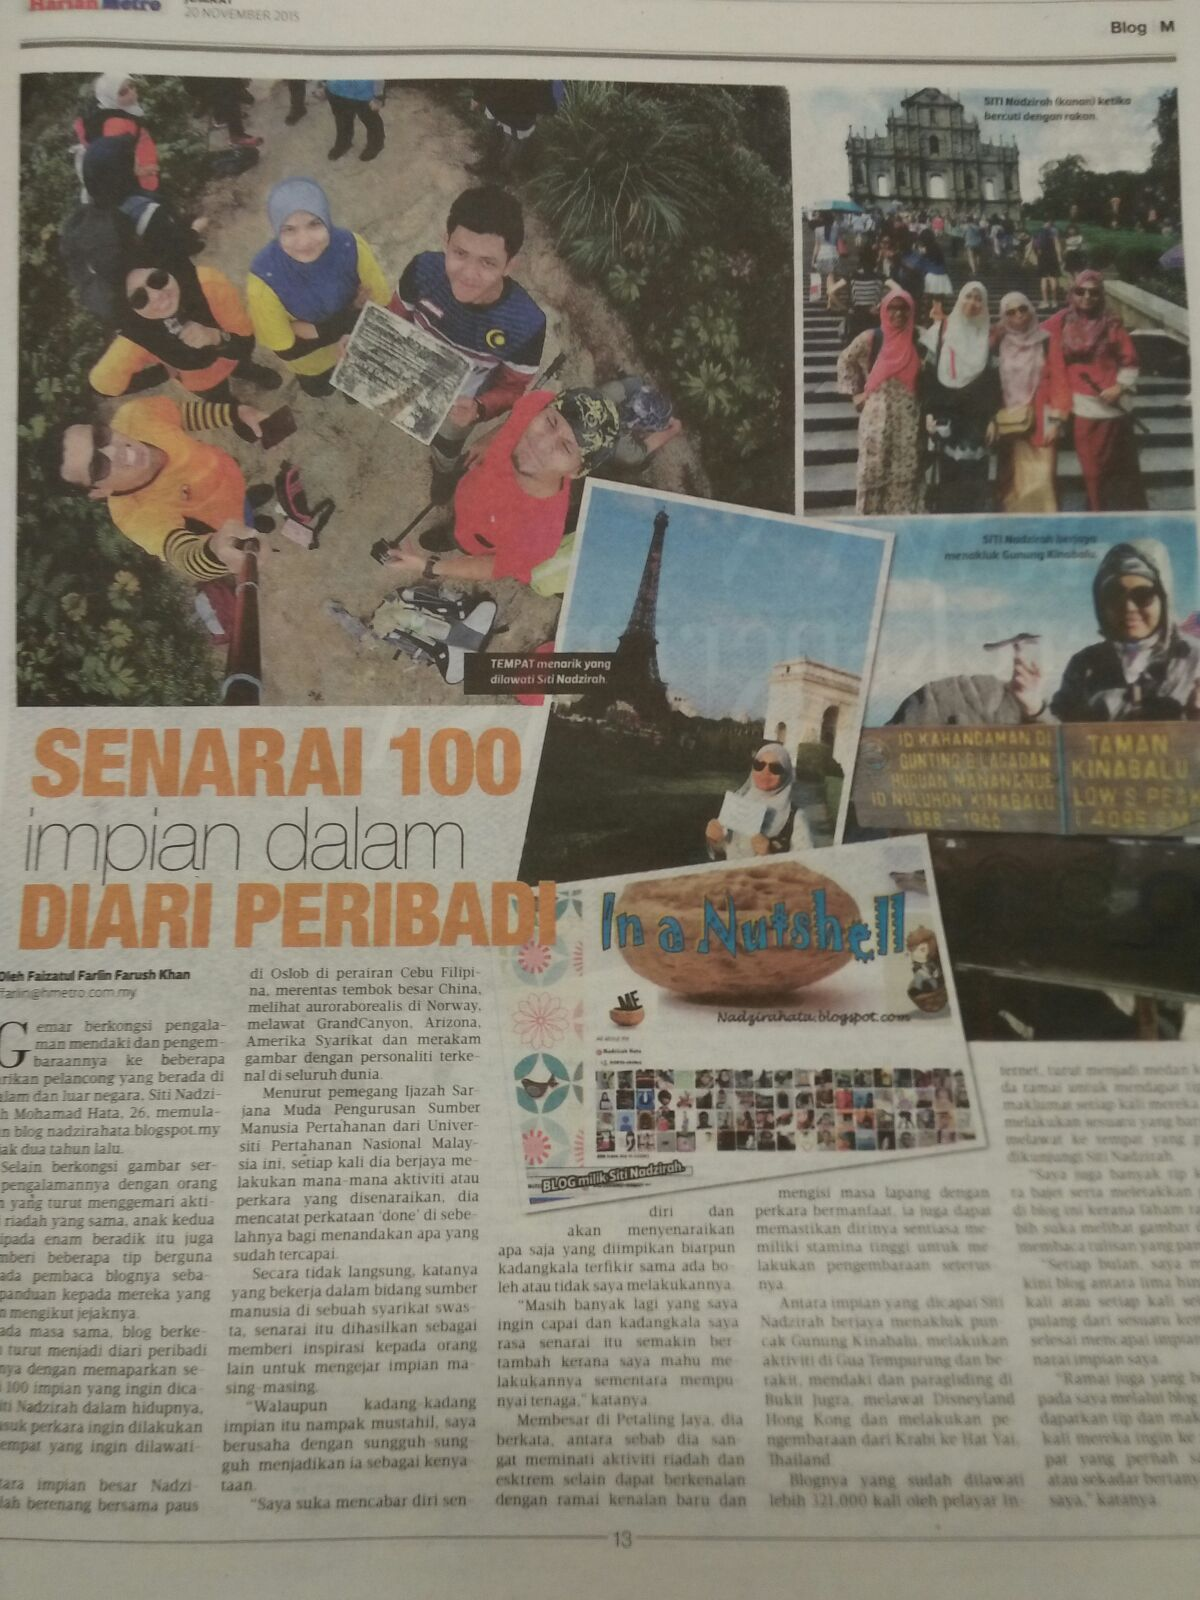 'In a Nutshell' in Harian Metro